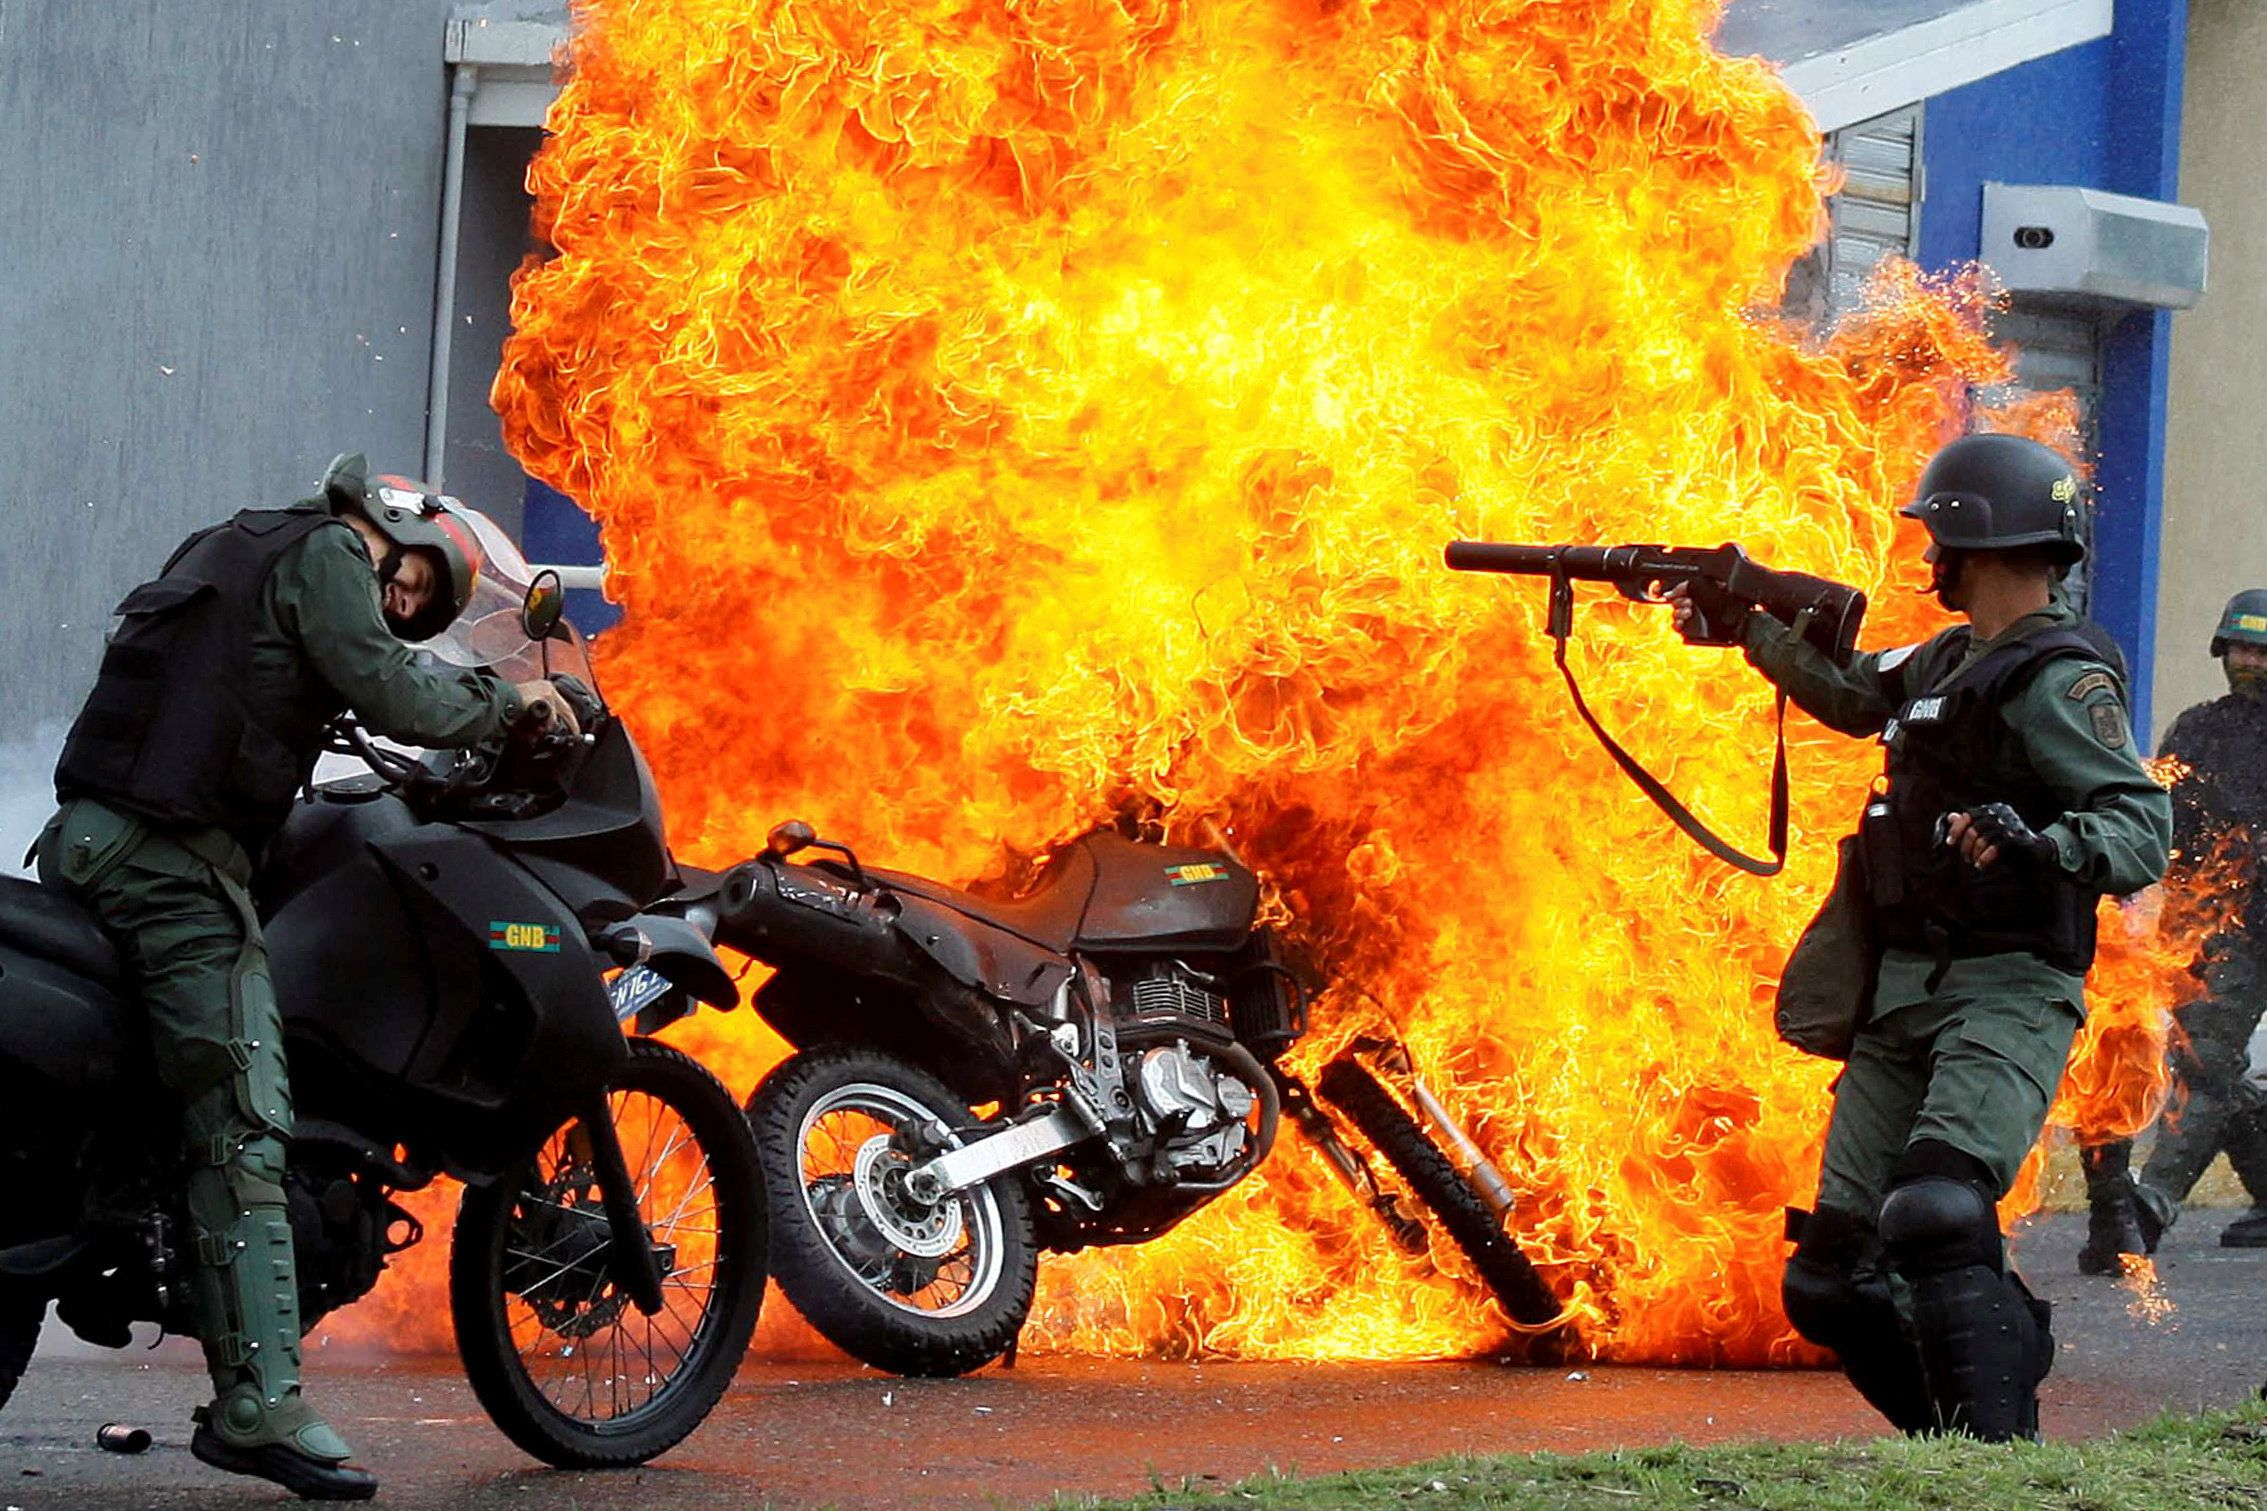 Riot security forces clash with demonstrators as a motorcycle is set on fire during a protest against Maduro. San Cristobal,